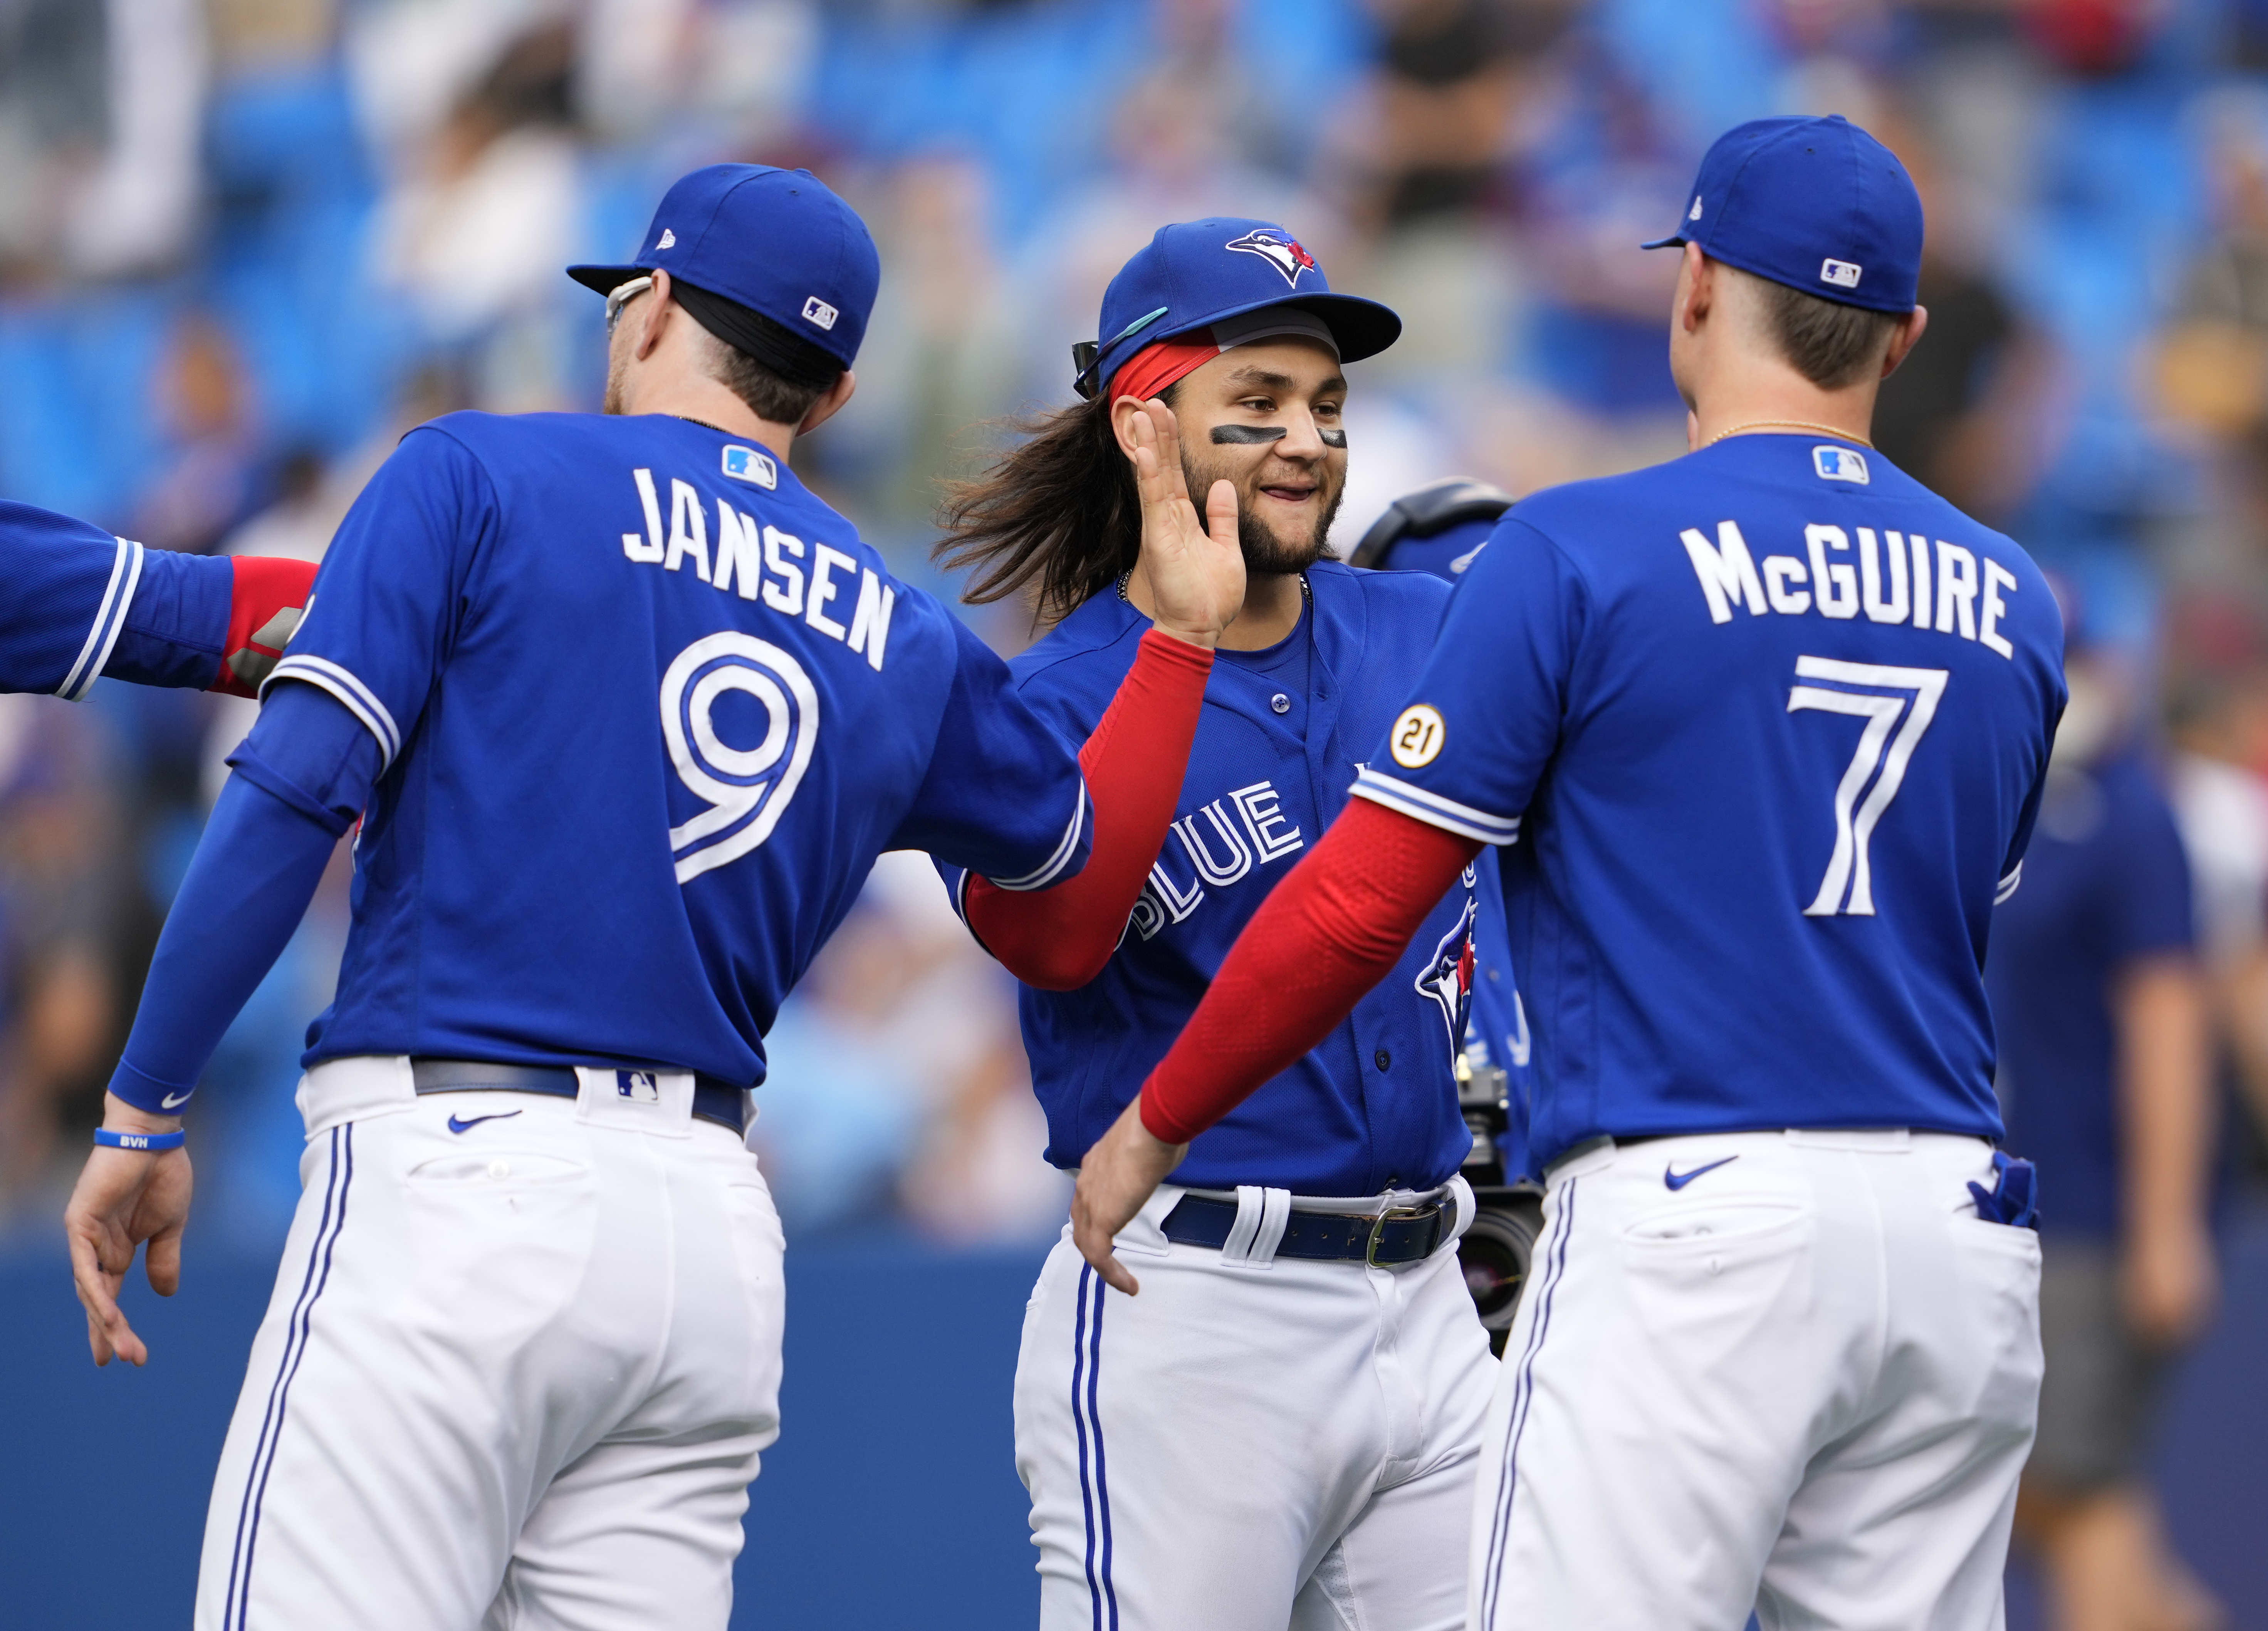 Bo Bichette, Reese McGuire, and Danny Jansen of the Toronto Blue Jays celebrate defeating the Tampa Bay Rays during their MLB game at the Rogers Centre on September 15, 2021 in Toronto, Ontario, Canada.